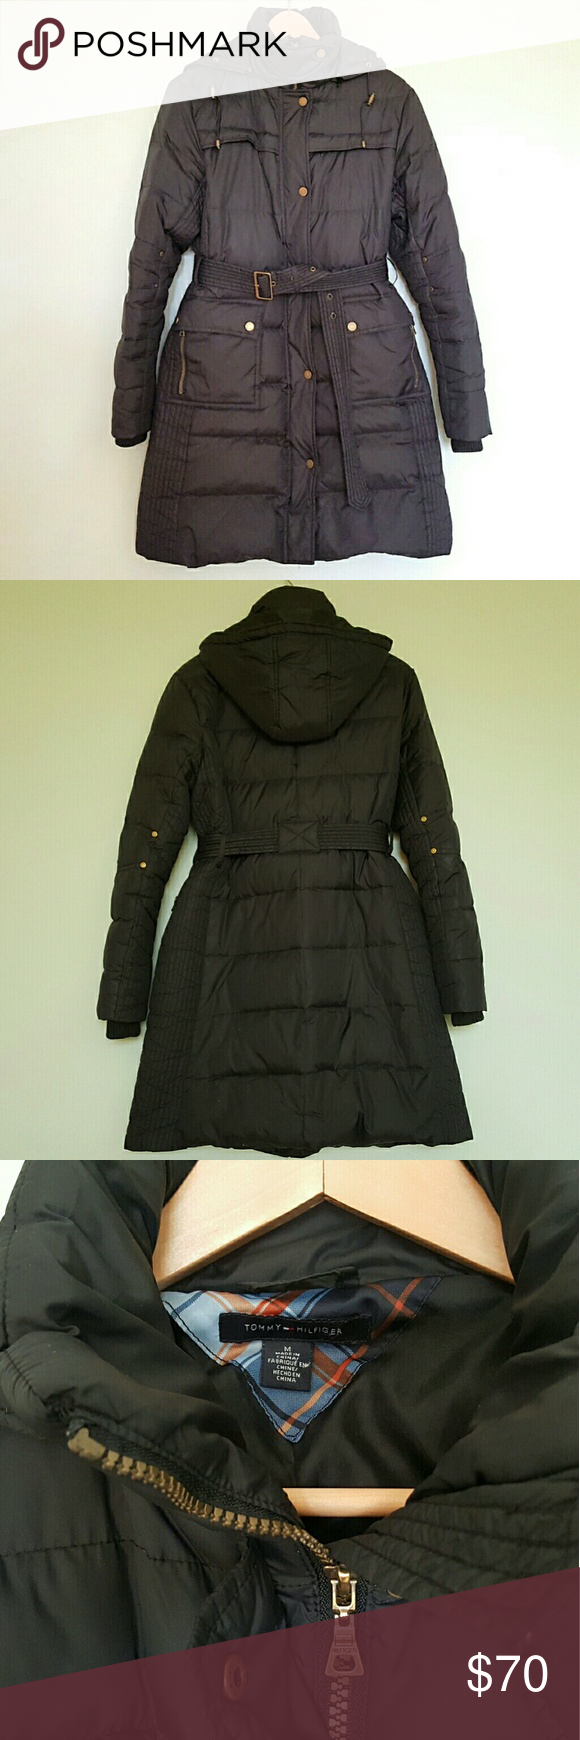 Tommy Hilfiger Black Down Hooded Puffer Coat M This cute